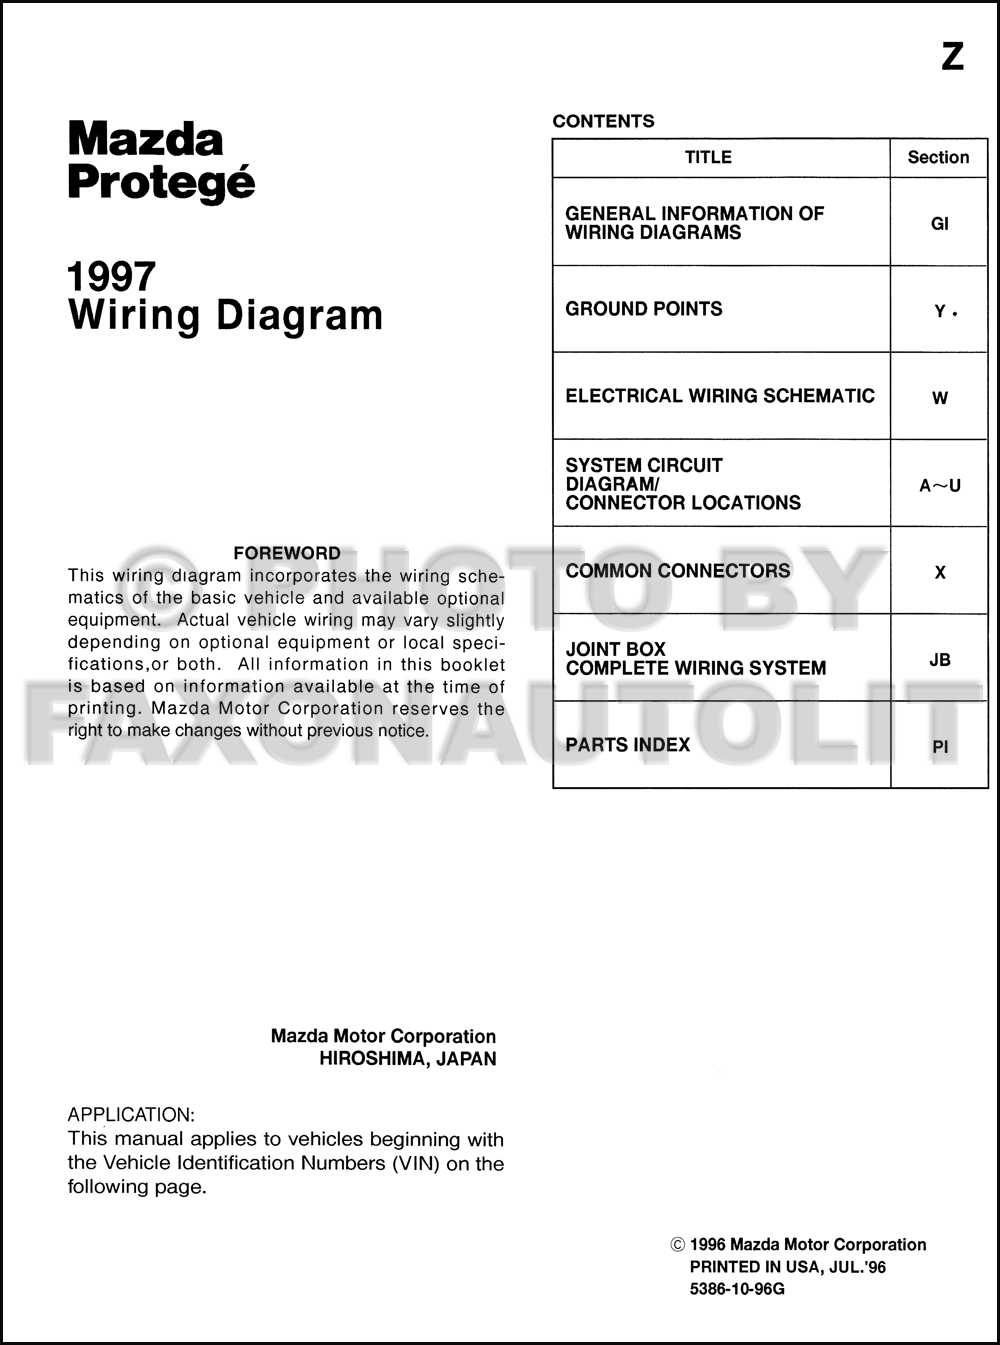 1999 Mazda 626 Wiring Diagram Libraries 1997 Protege Manual Original1999 20